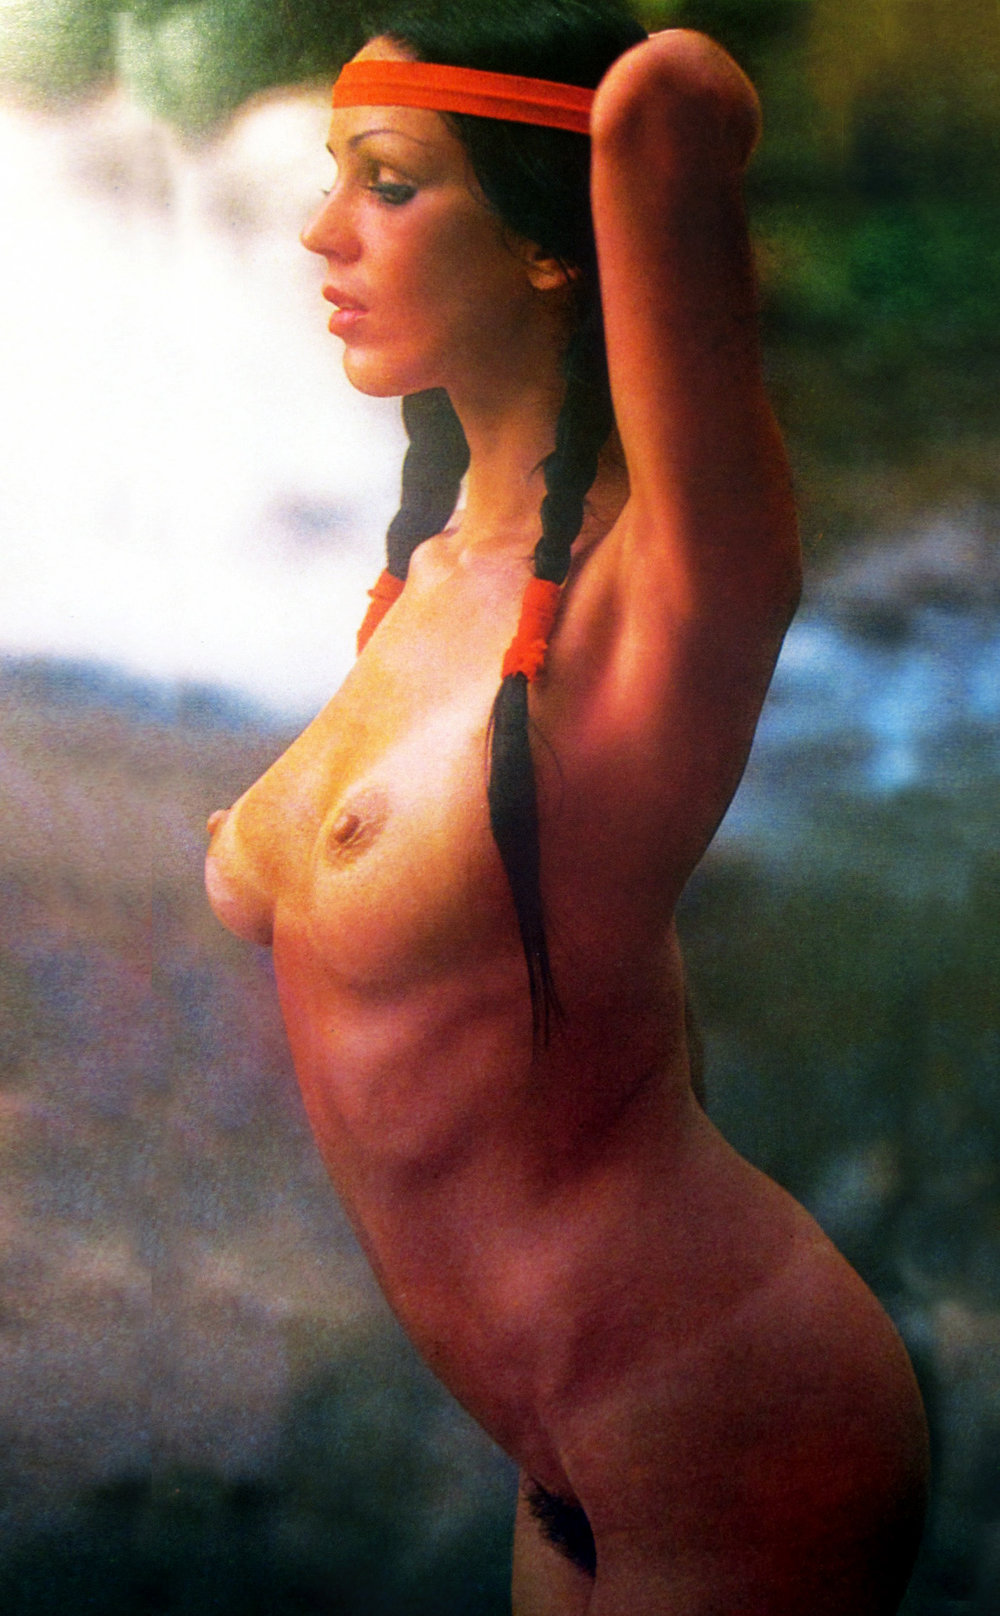 vintage-nude-photo-hippy-with-headband-braids